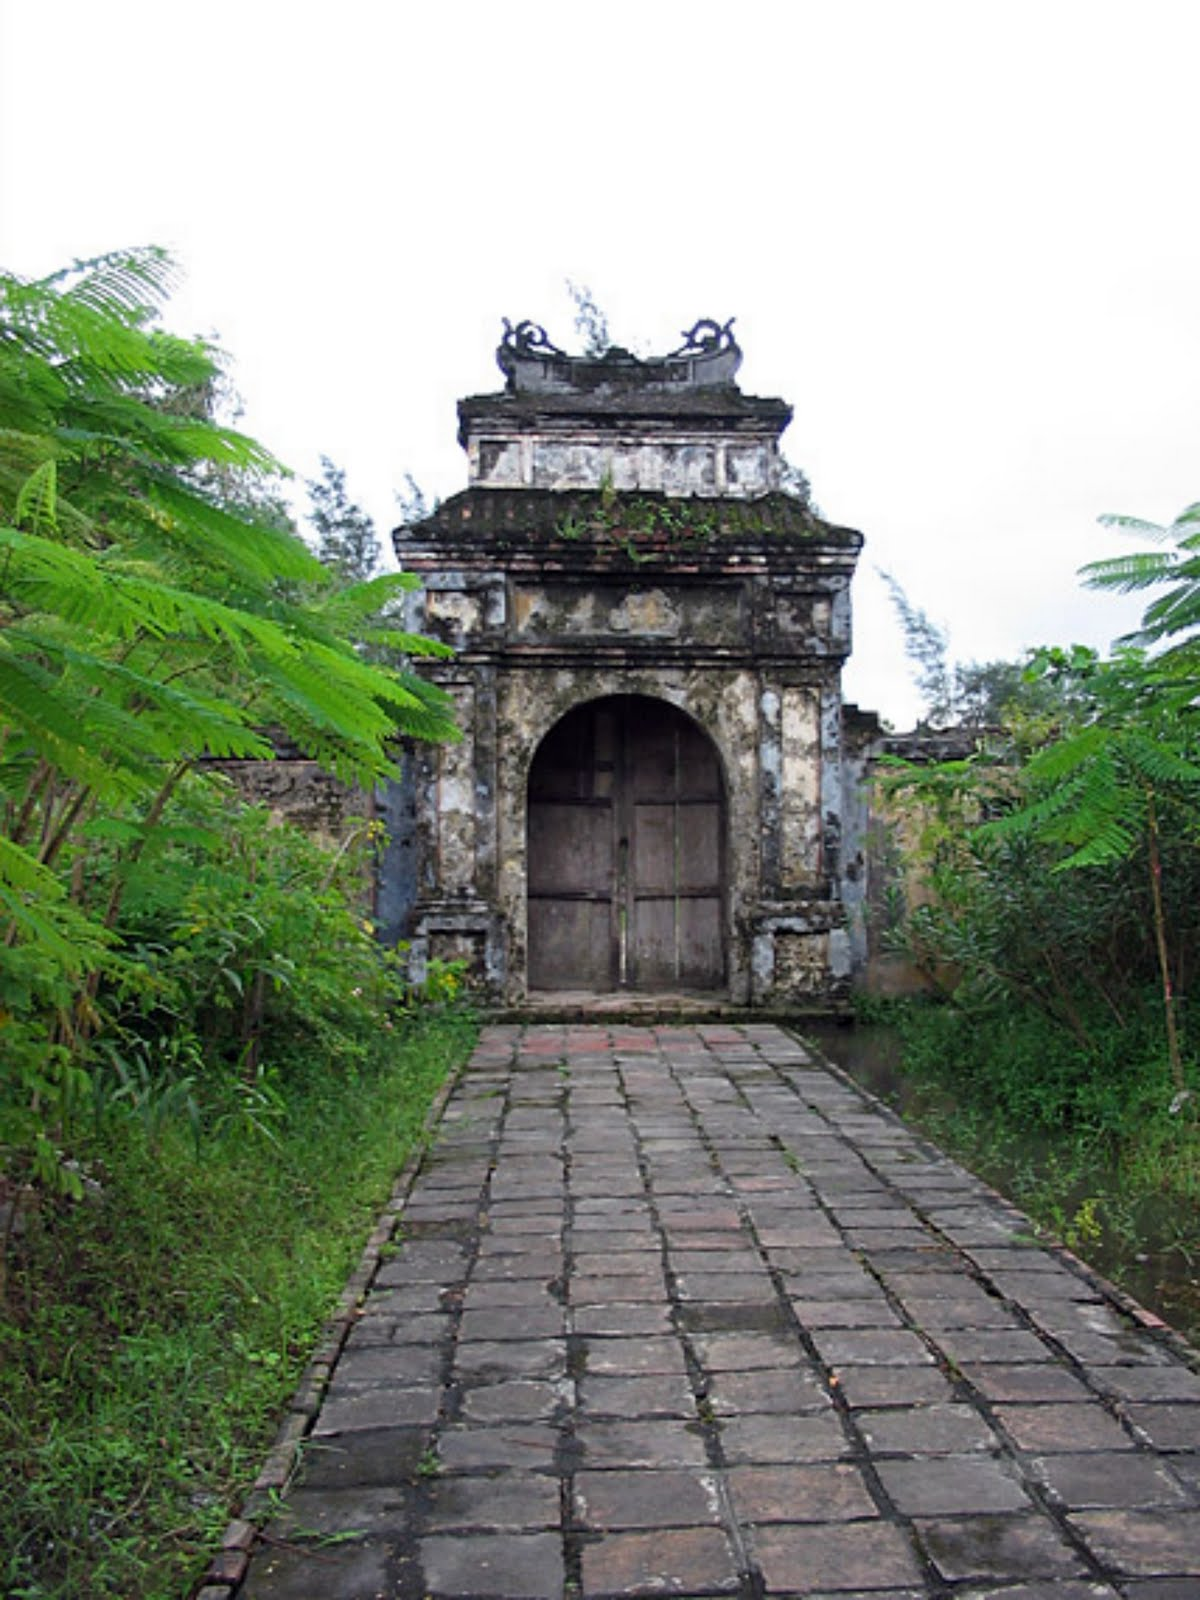 imperial tomb of duc duc hue  vietnam - monuments of imperial tomb complex of hue duc duc